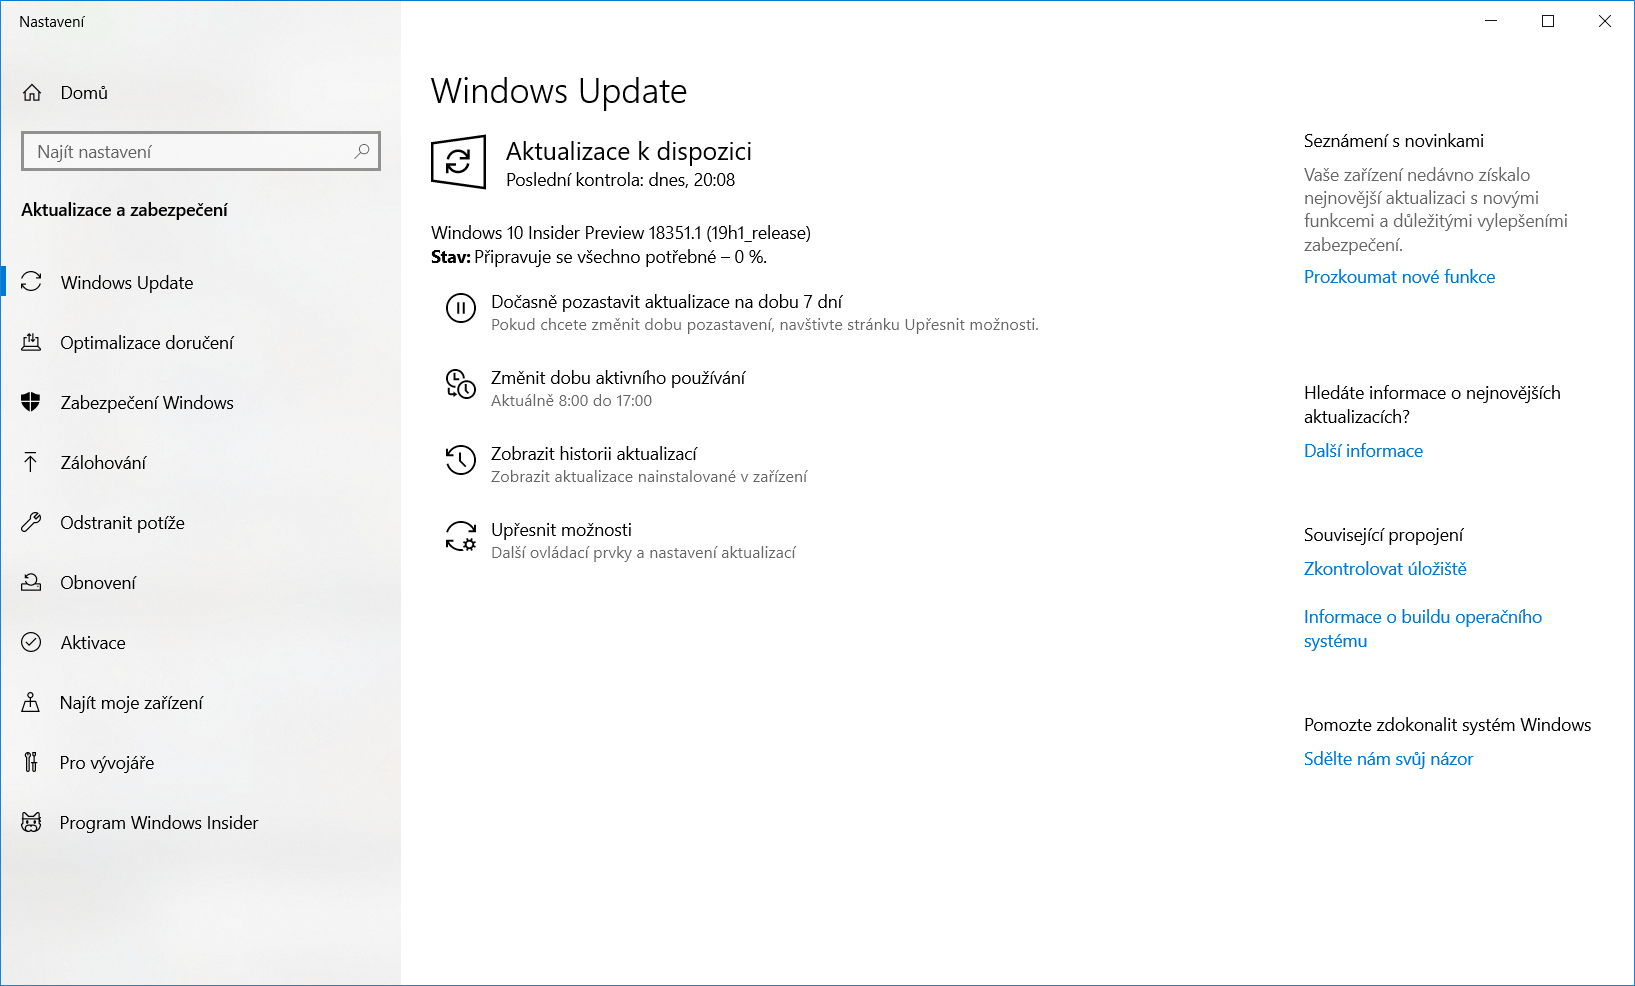 Windows 10 Insider Preview build 18351 1